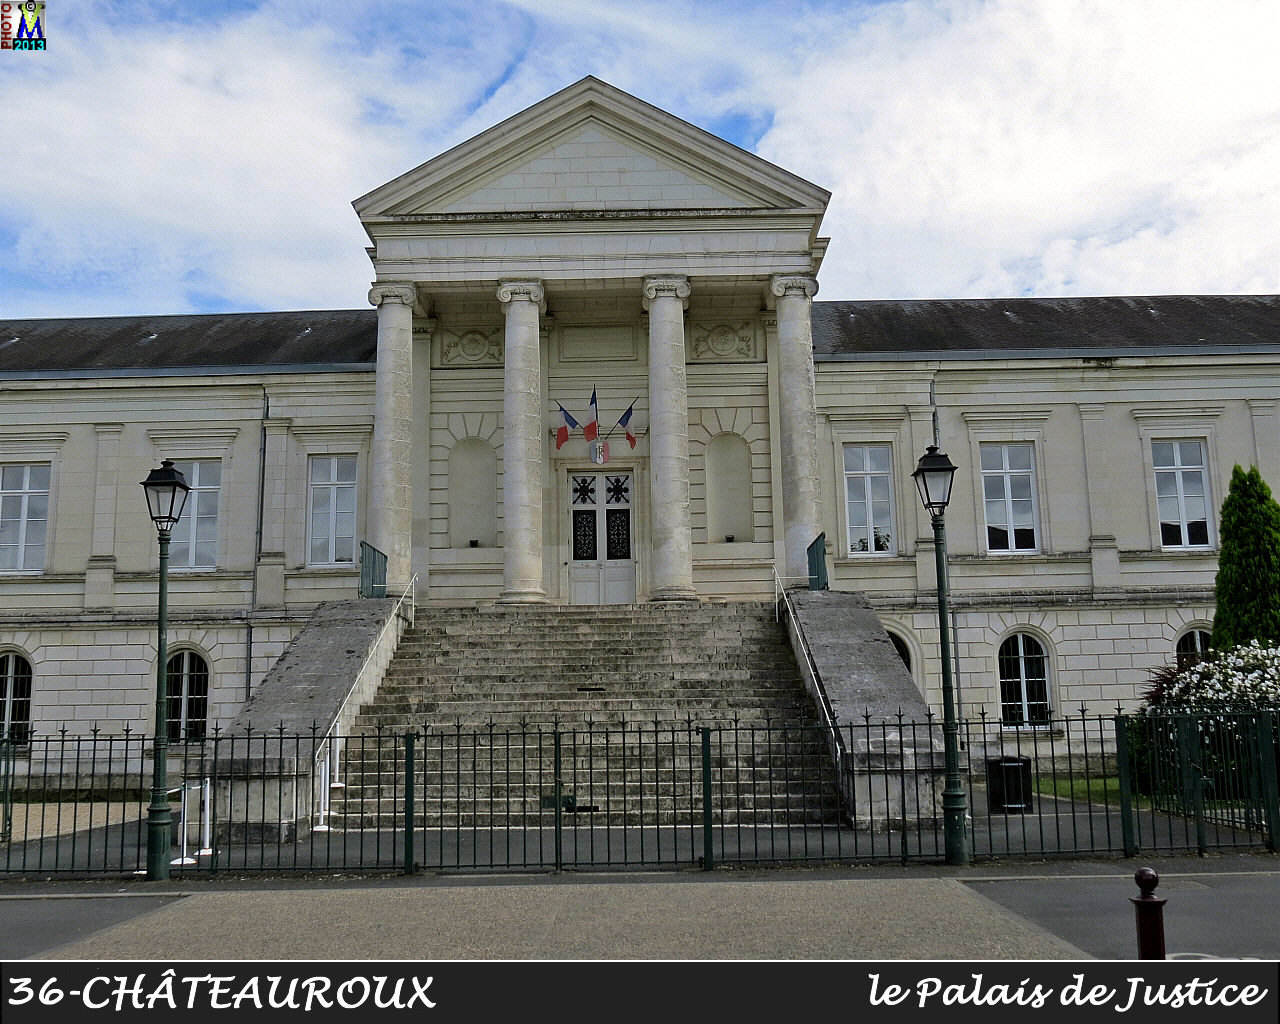 36CHATEAUROUX_justice_100.jpg